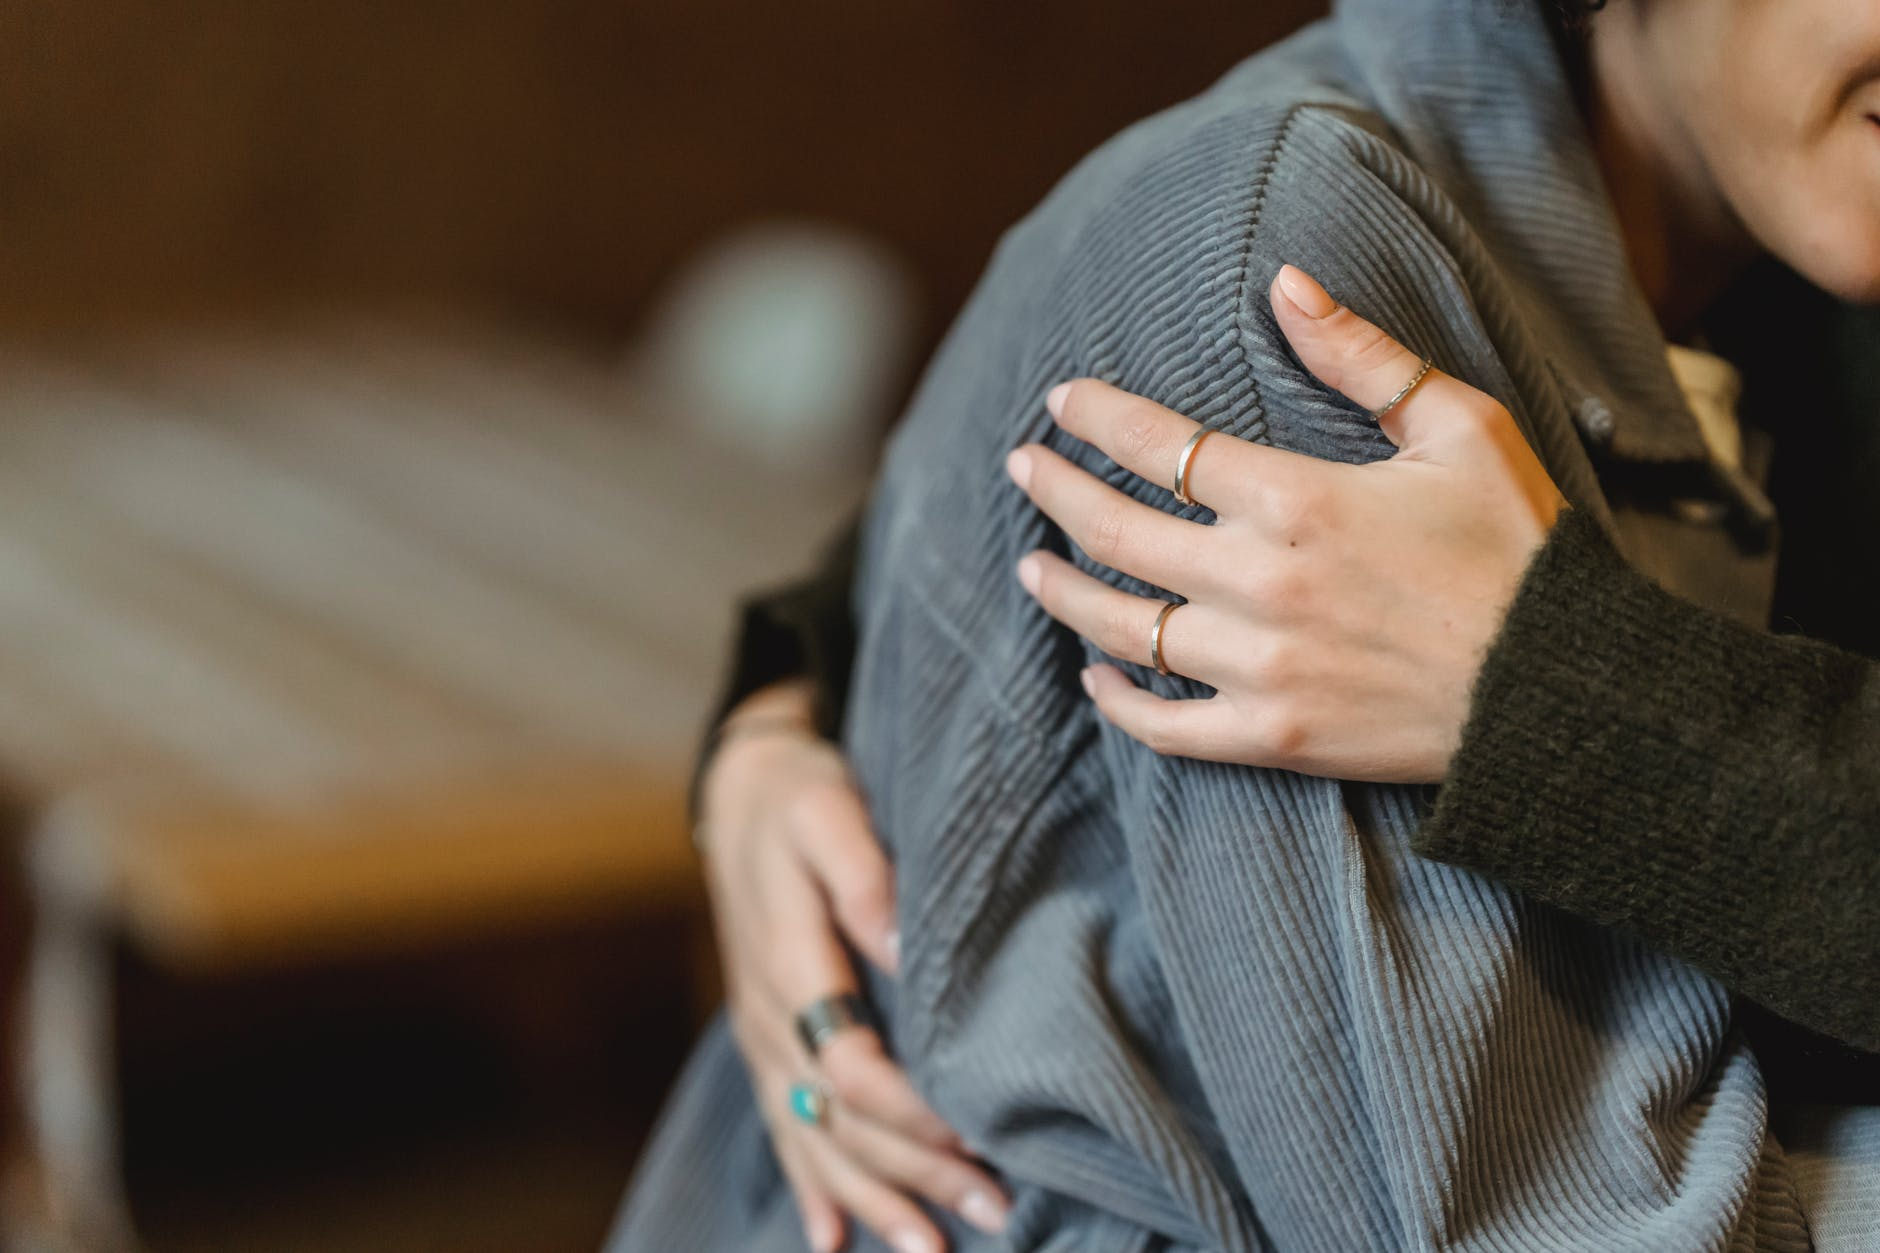 woman comforting desperate girlfriend and embracing gently